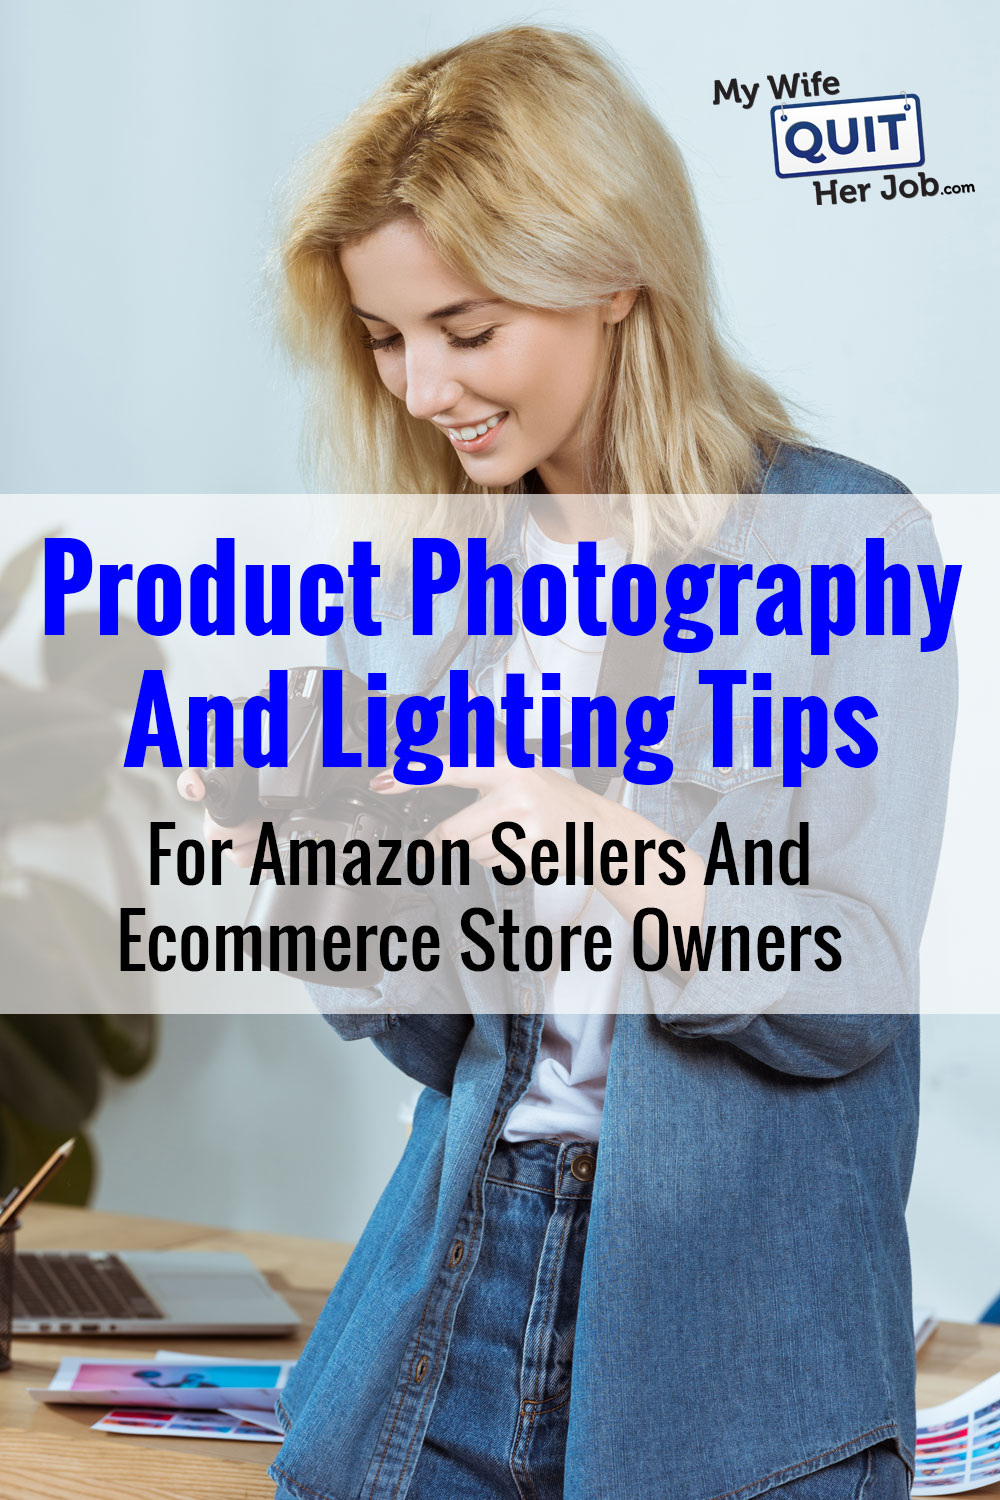 Product Photography Tips For Amazon Sellers And Ecommerce Store Owners